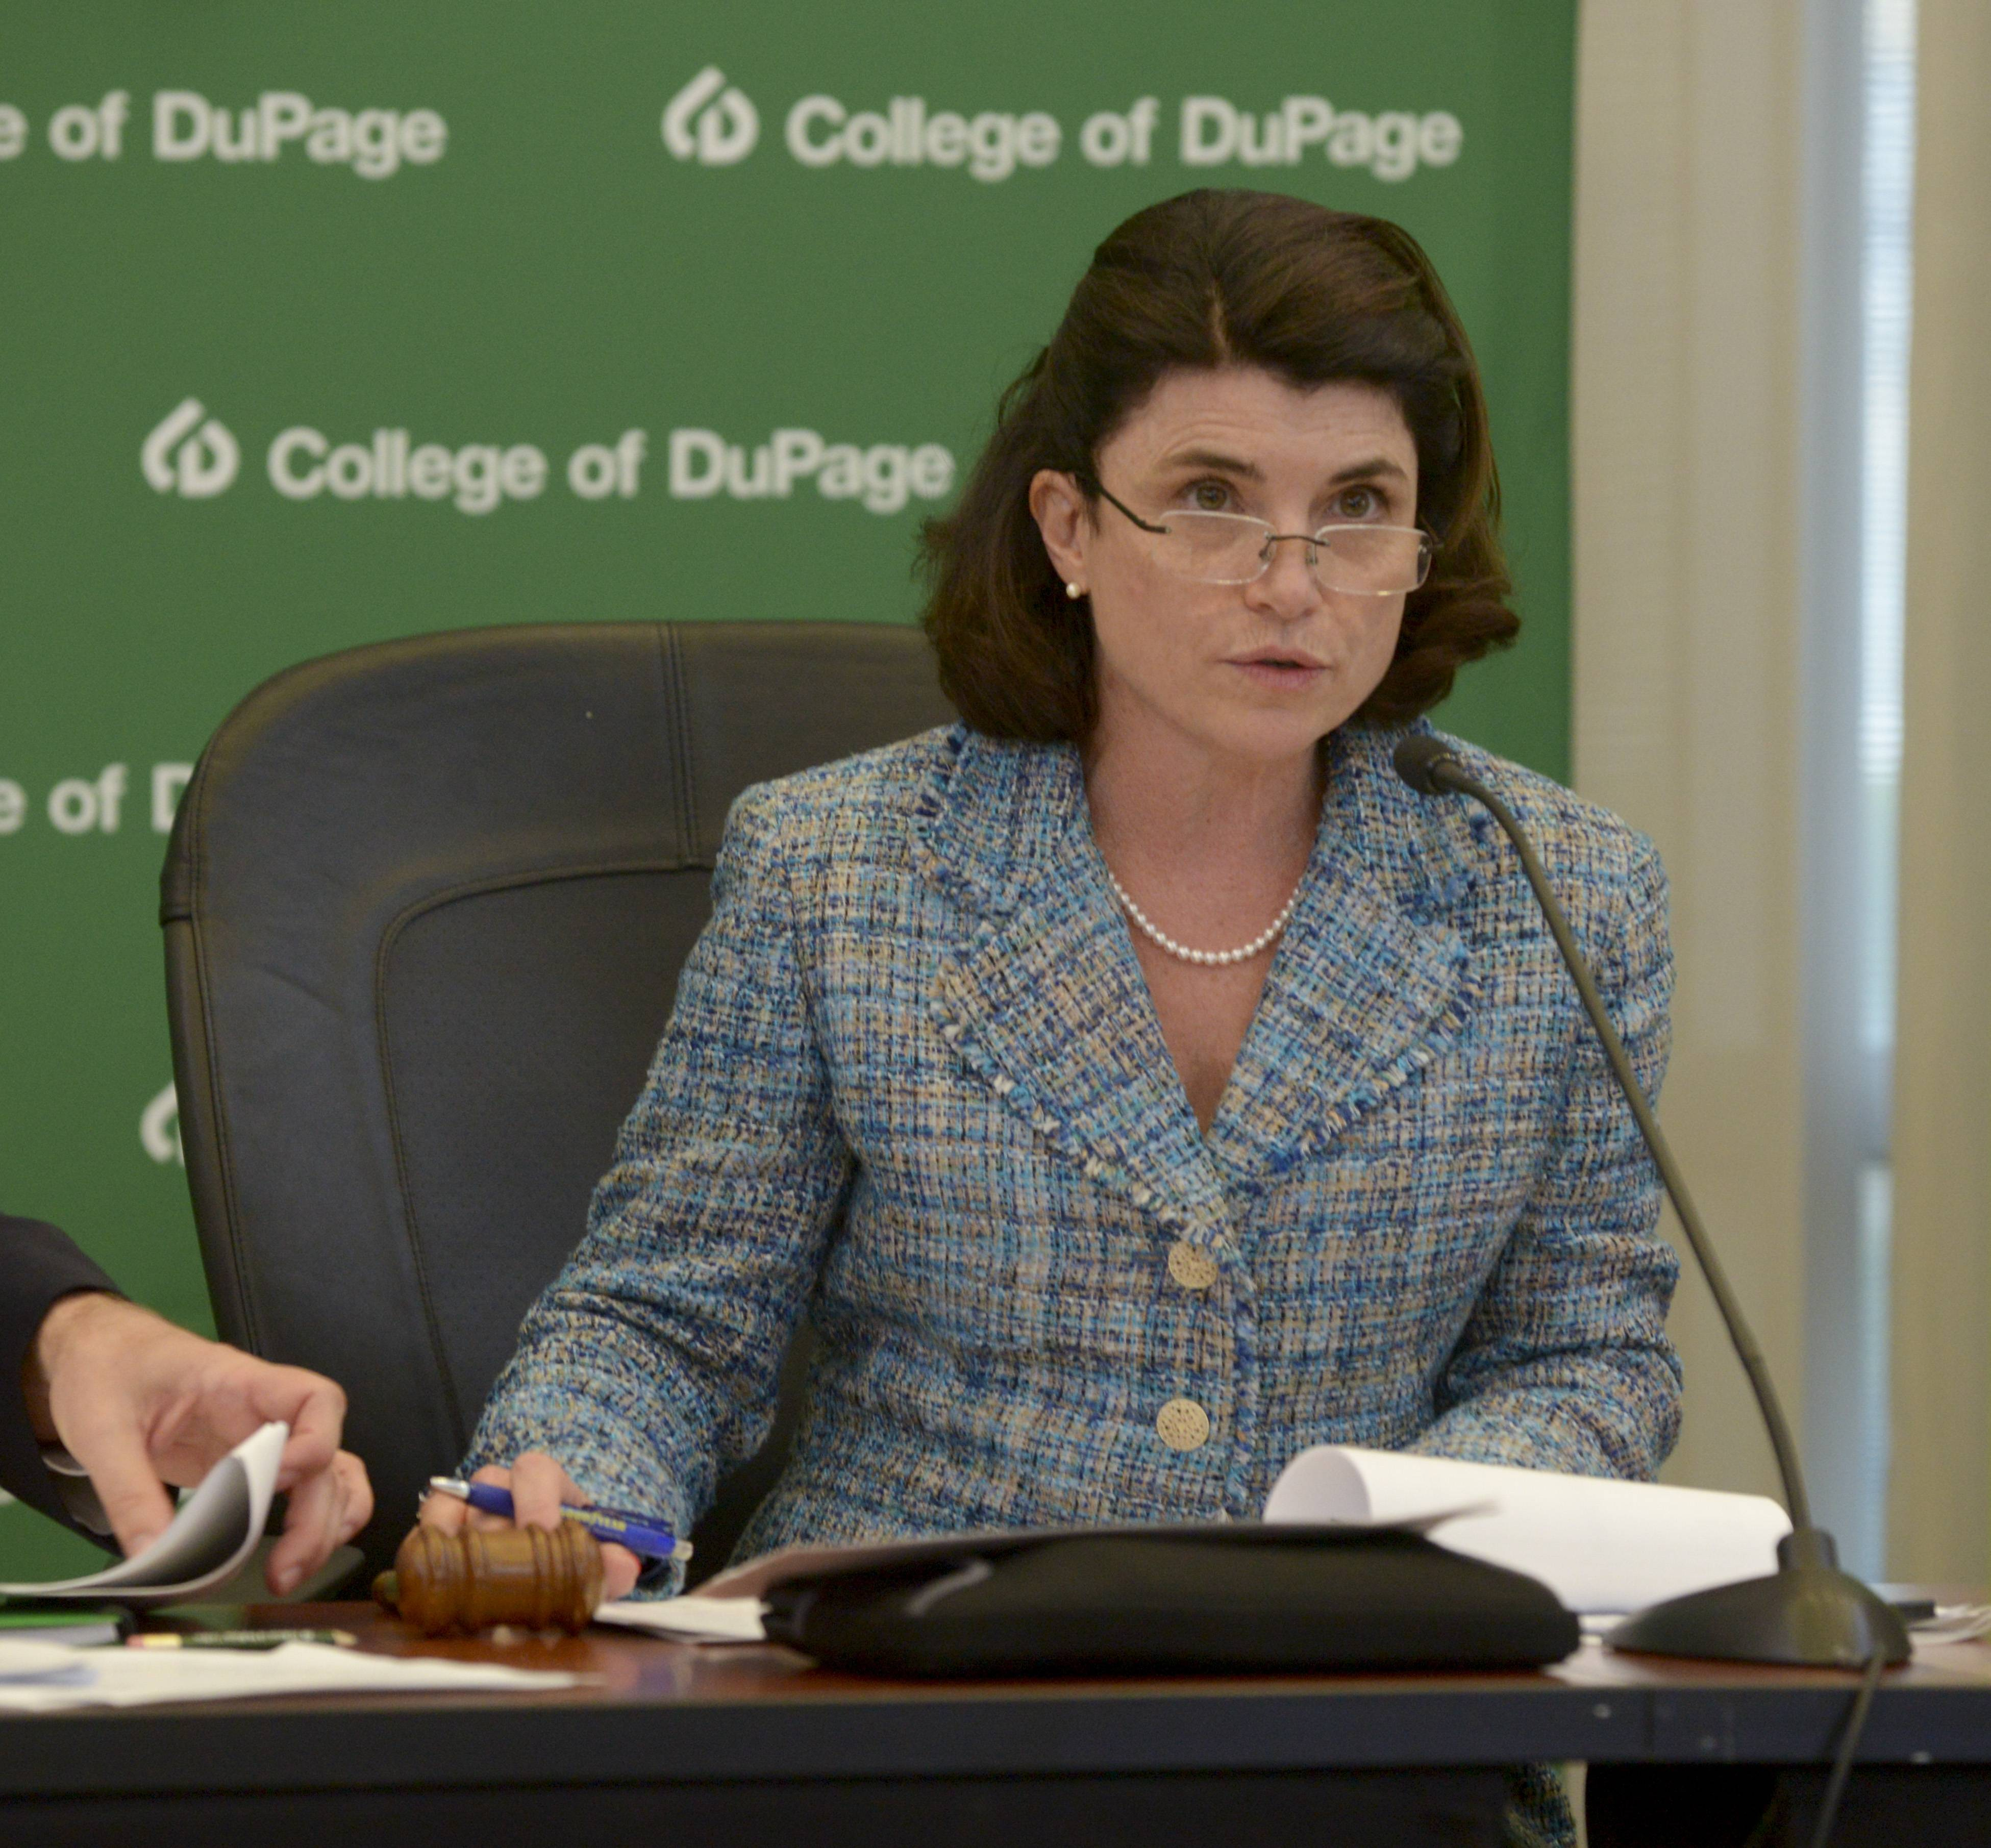 Hamilton resigns from College of DuPage board